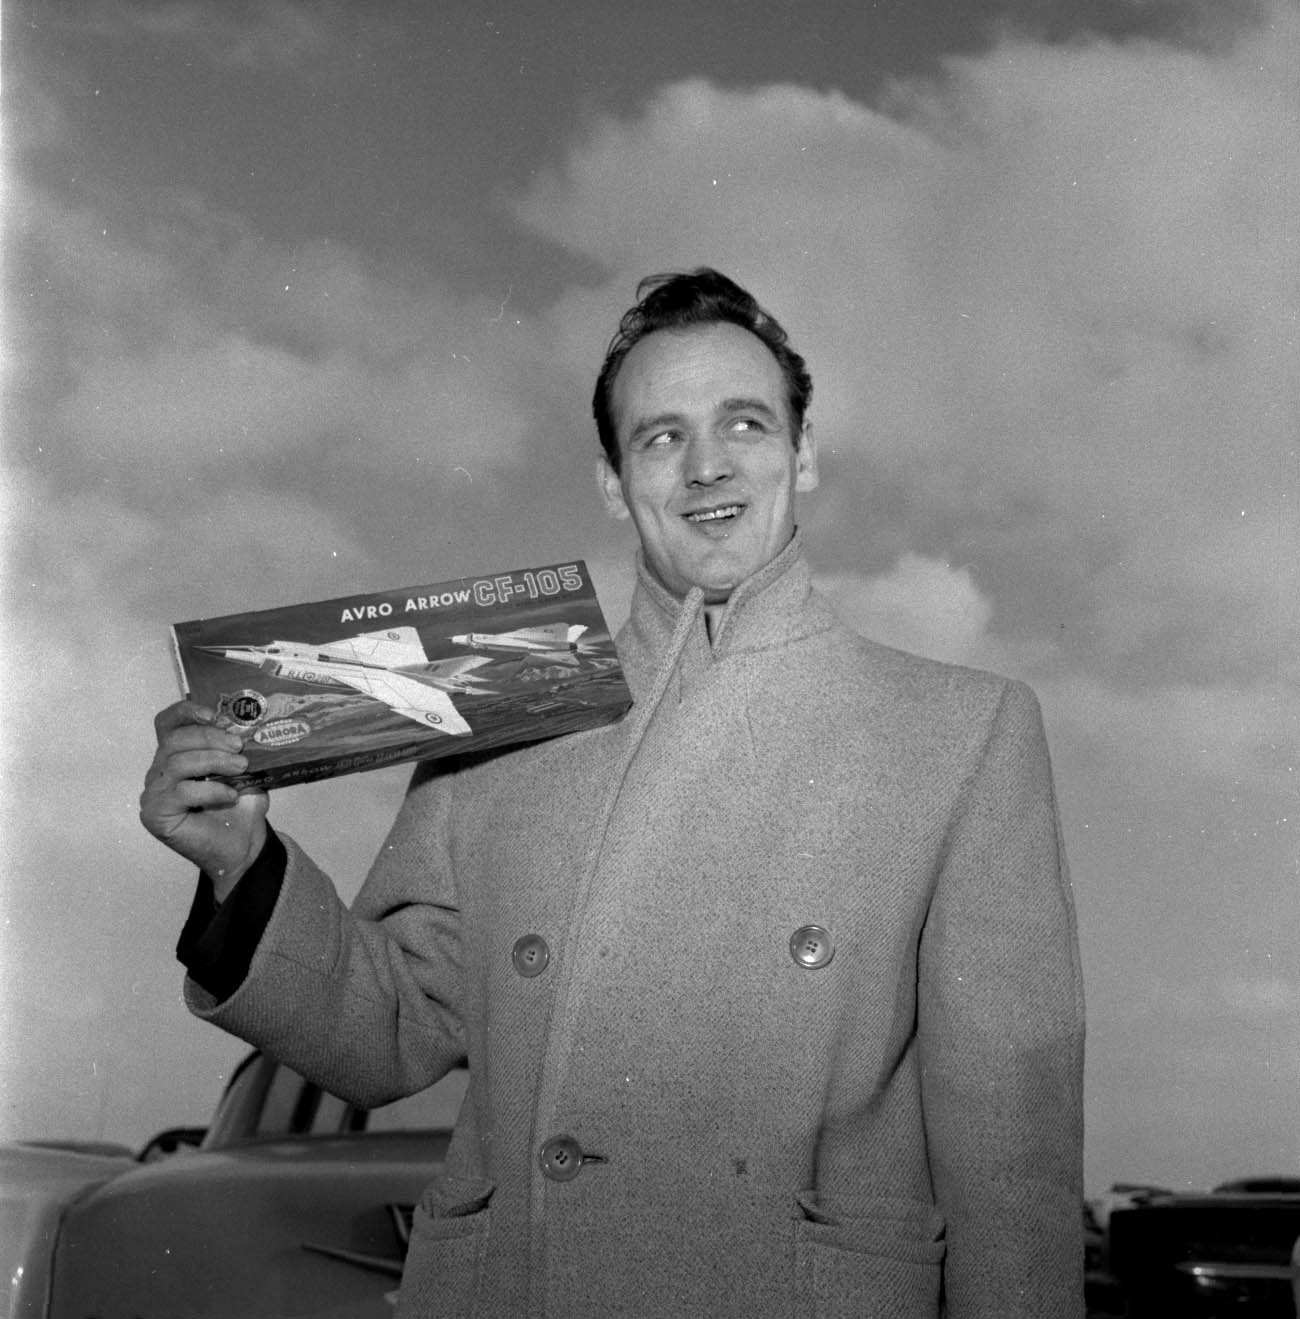 A black-and-white photograph of a man holding a model airplane kit.